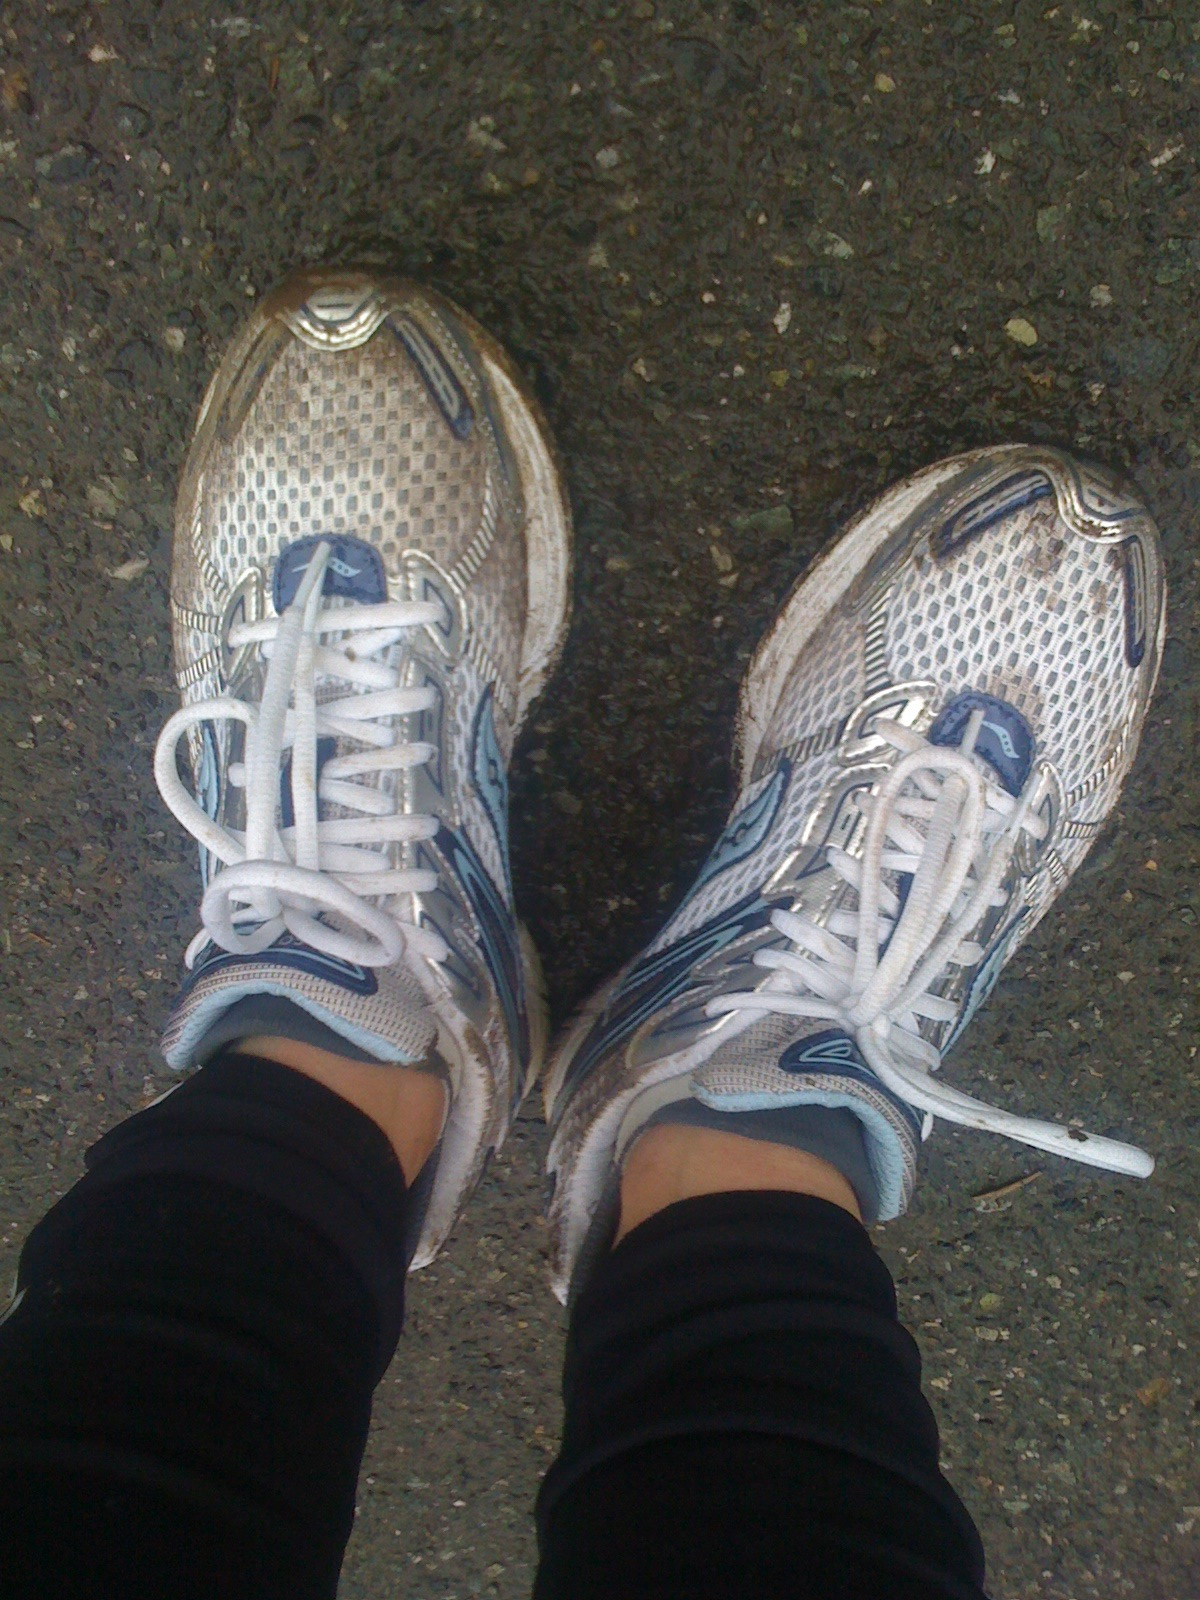 These feet are made for running